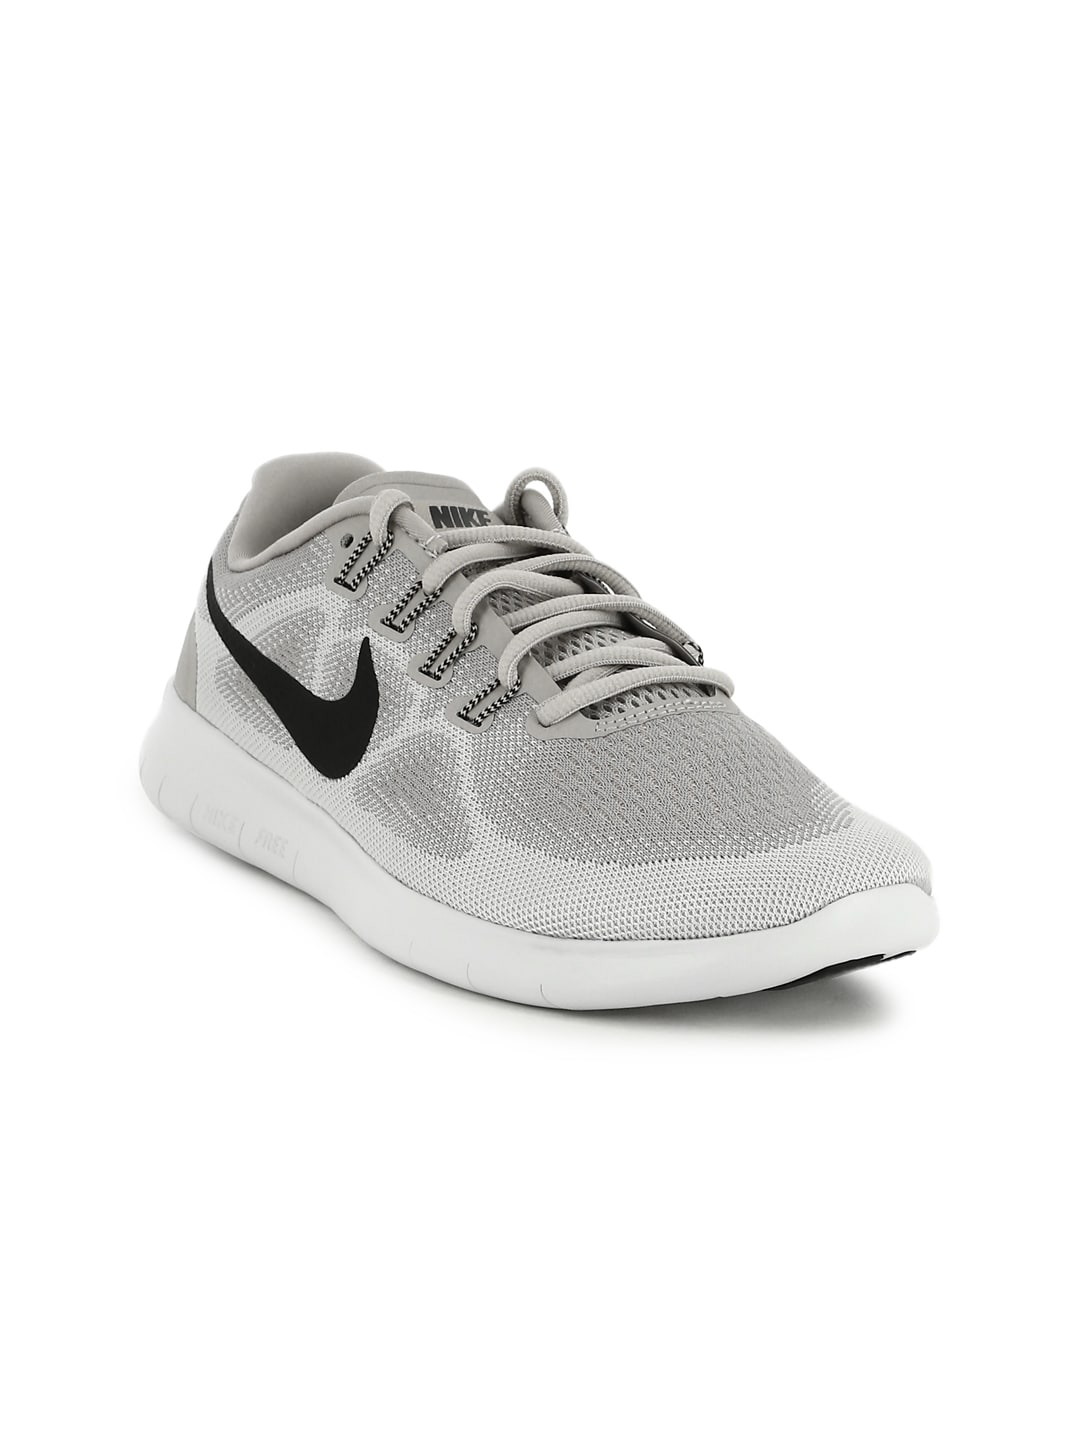 5266796b2f9cf Nike Free - Buy Nike Free online in India